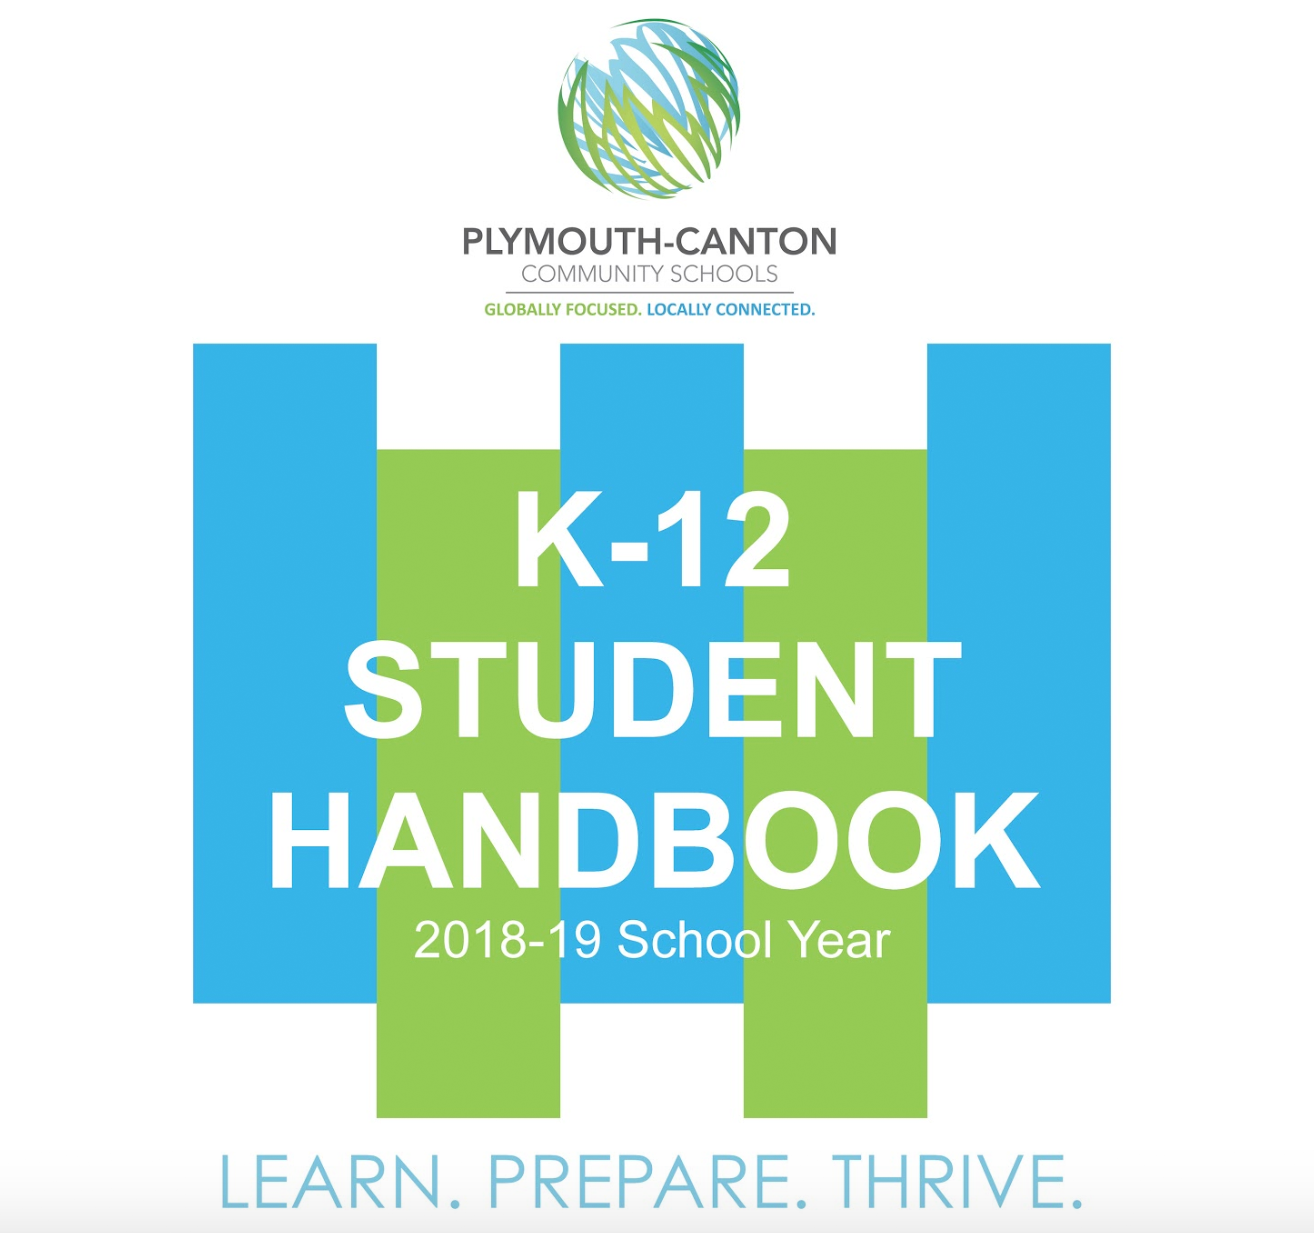 ... review the Handbook to familiarize yourselves with district policies,  procedures, and processes that will help ensure an excellent school year  for all ...